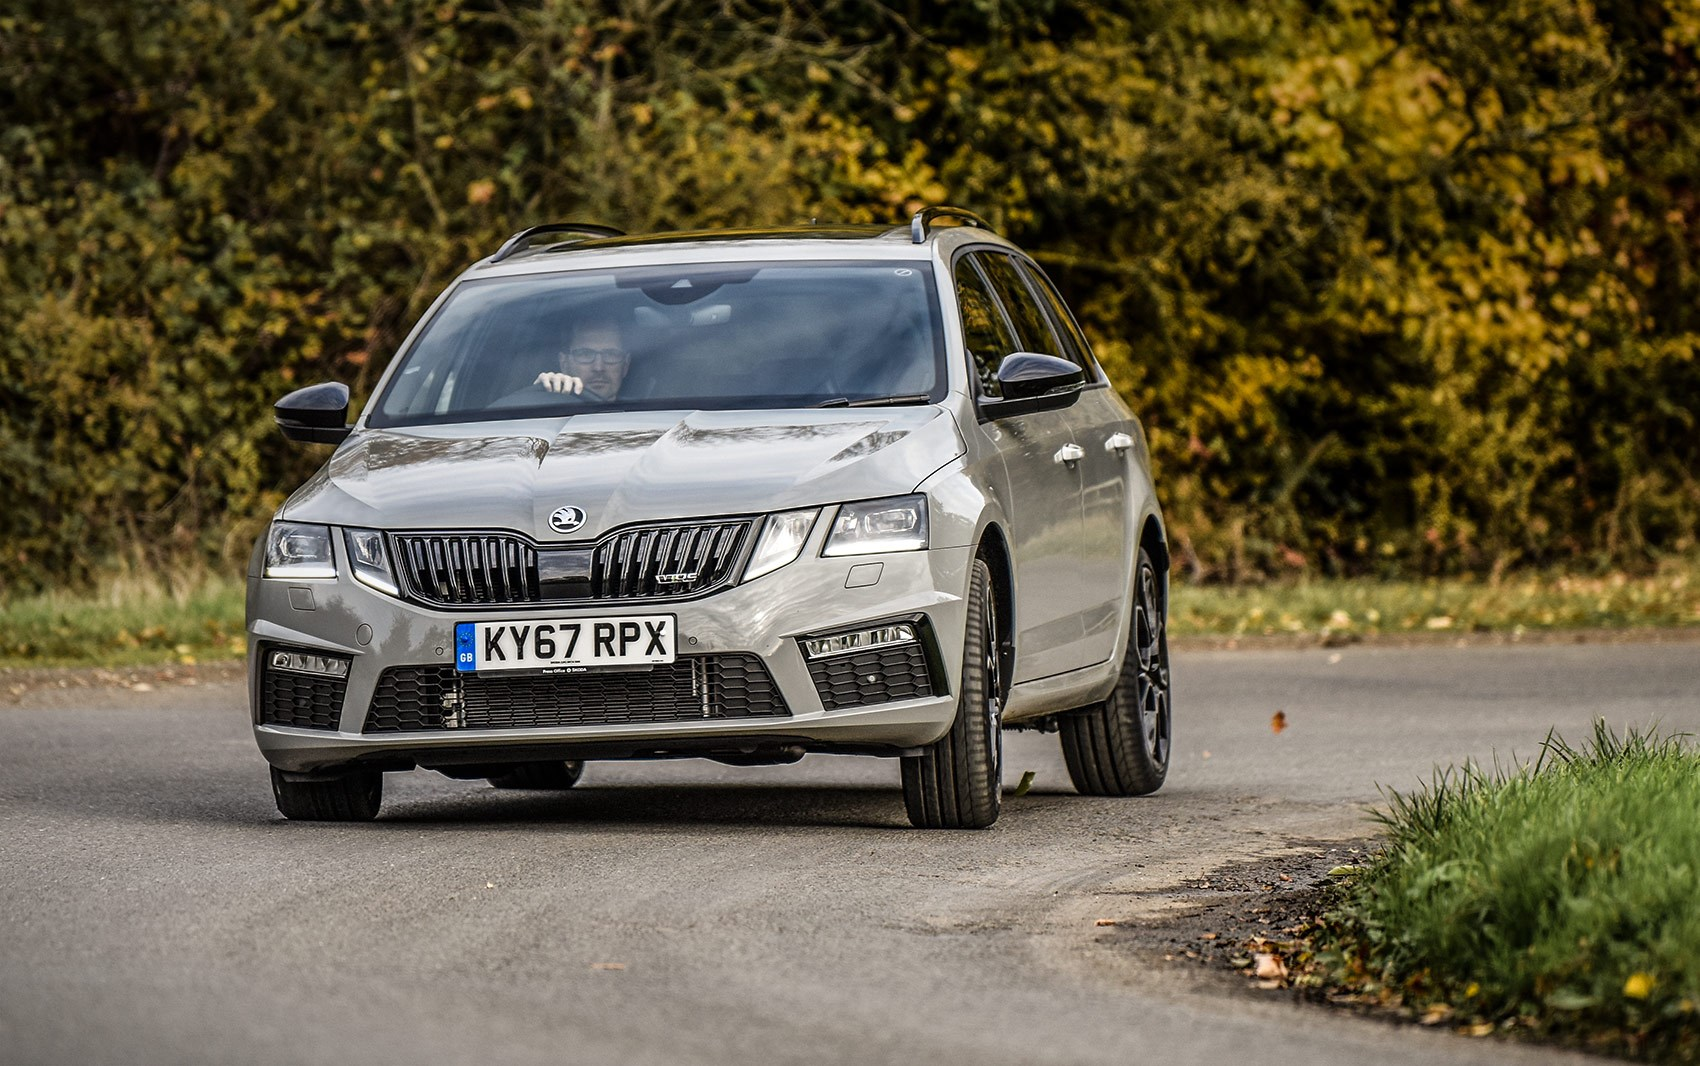 ... our turbocharged Skoda Octavia vRS 245 Estate ain't slow.